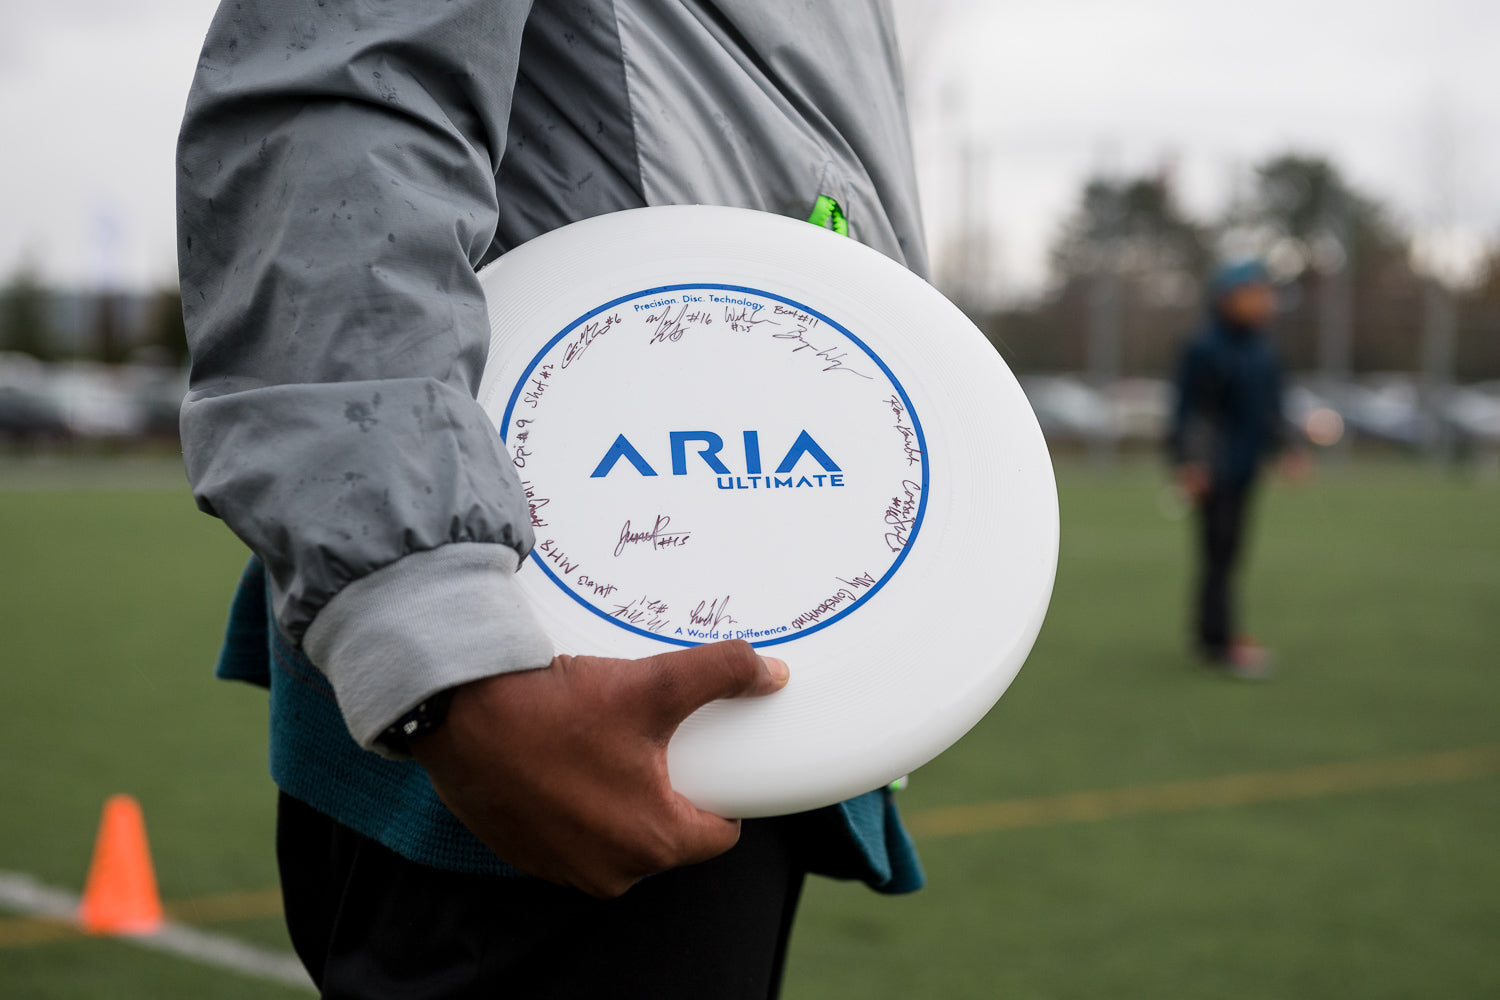 ARIA Ultimate disc autographed by professional ultimate players